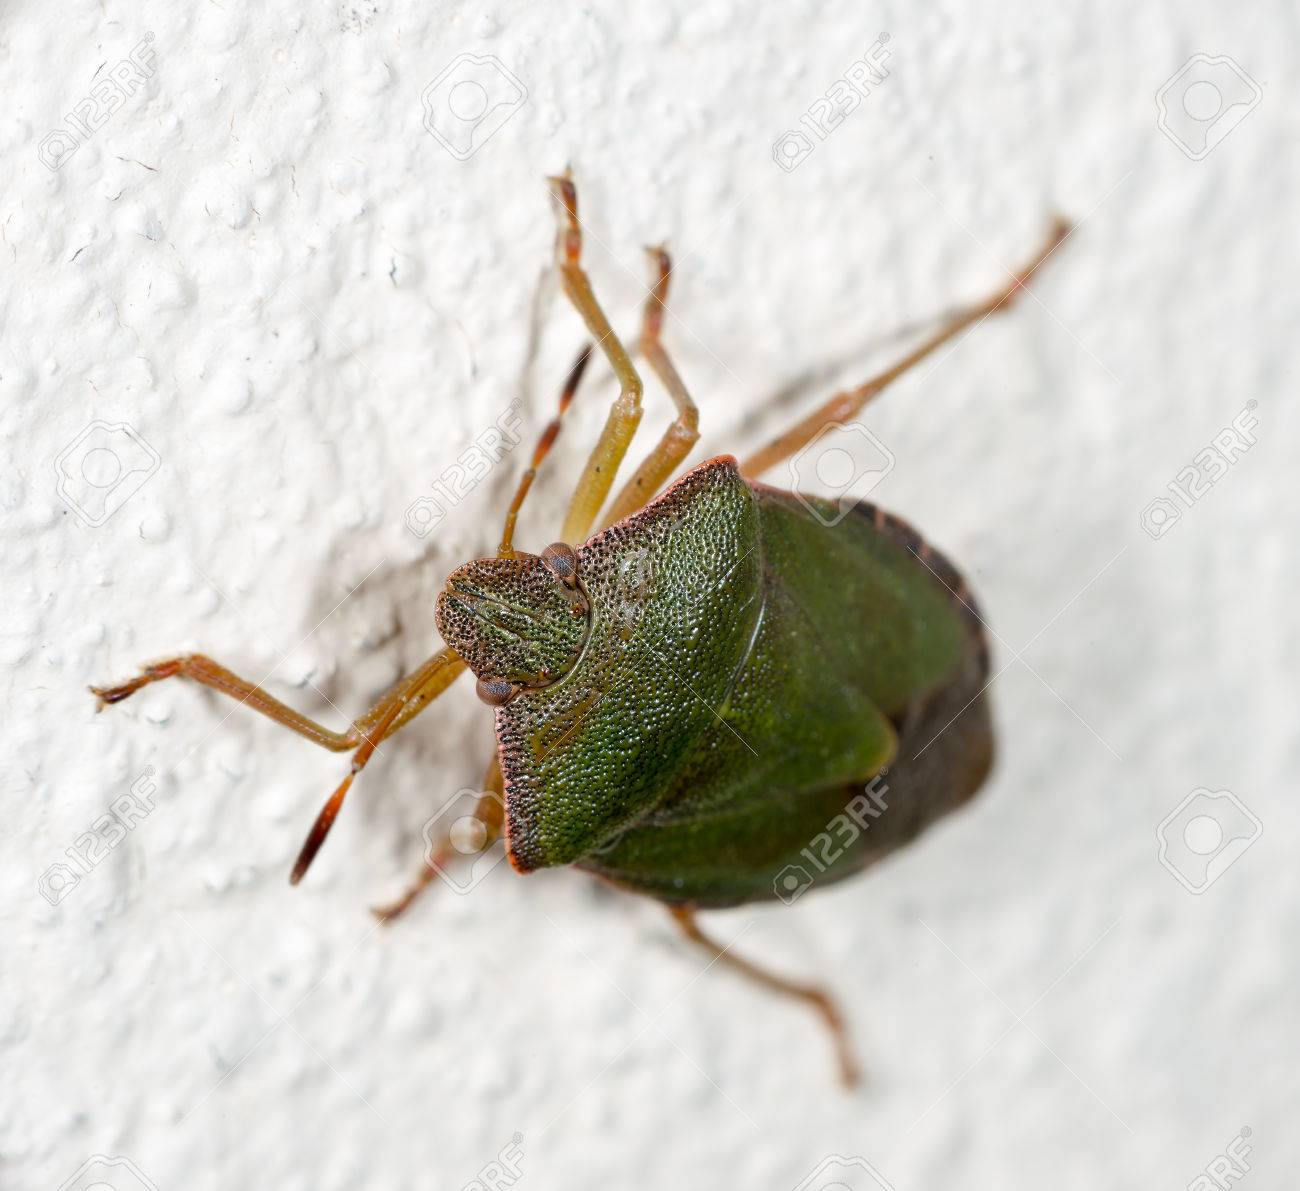 Green A Bedbug Crawling On The White Wall Of The House Stock Photo